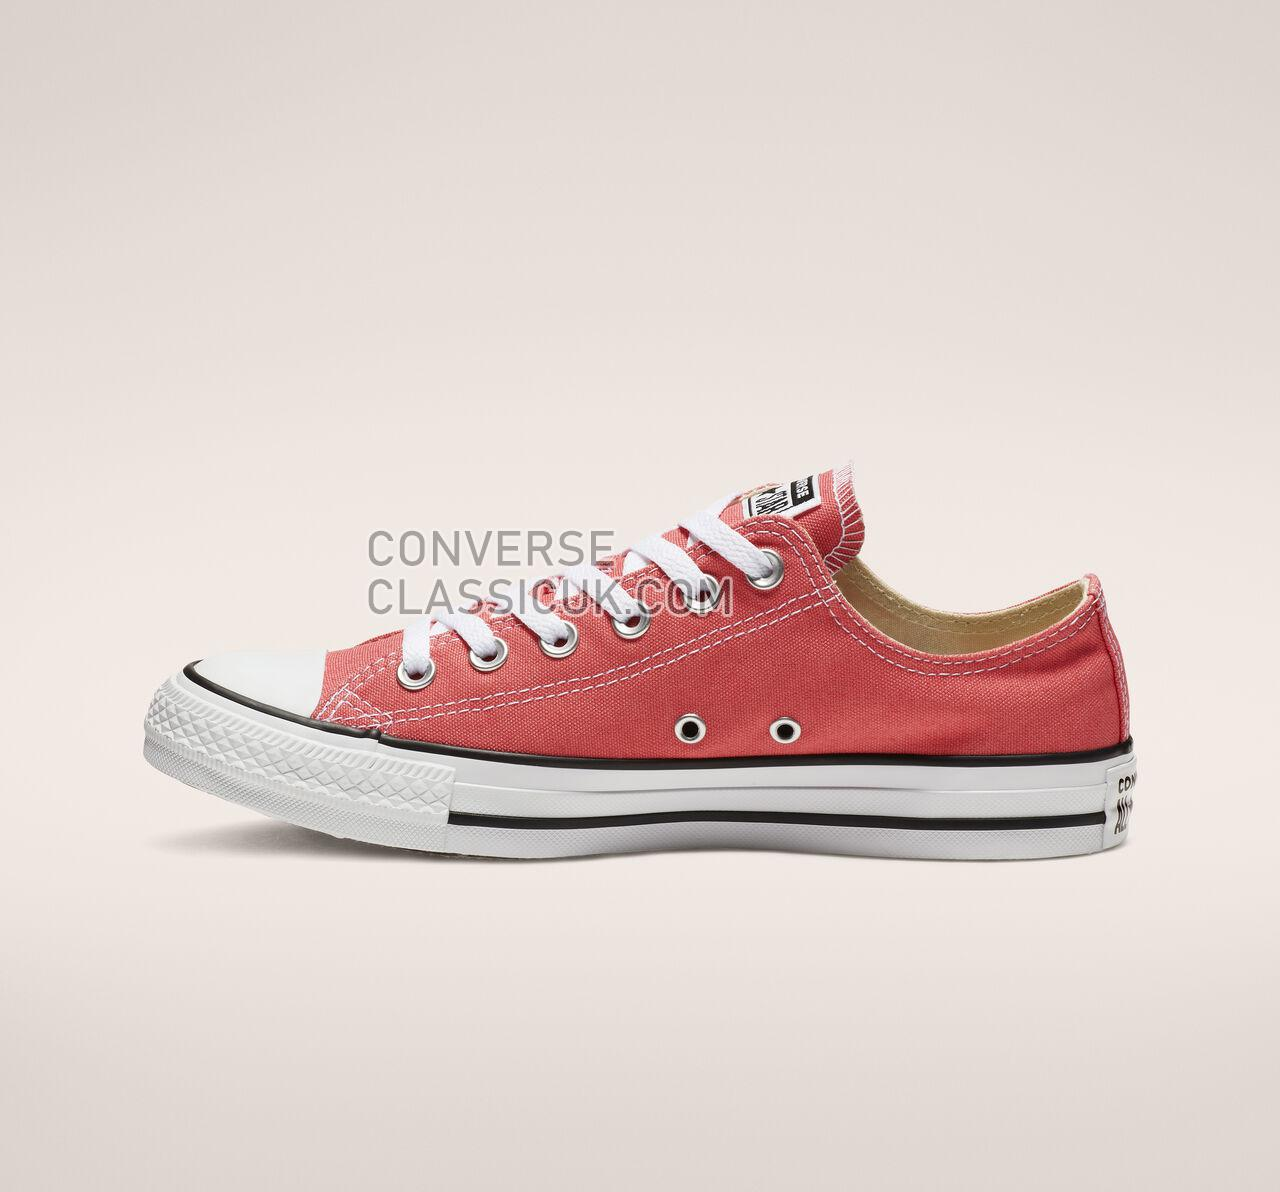 Converse Chuck Taylor All Star Seasonal Color Low Top Mens Womens Unisex 161421F Punch Coral Shoes